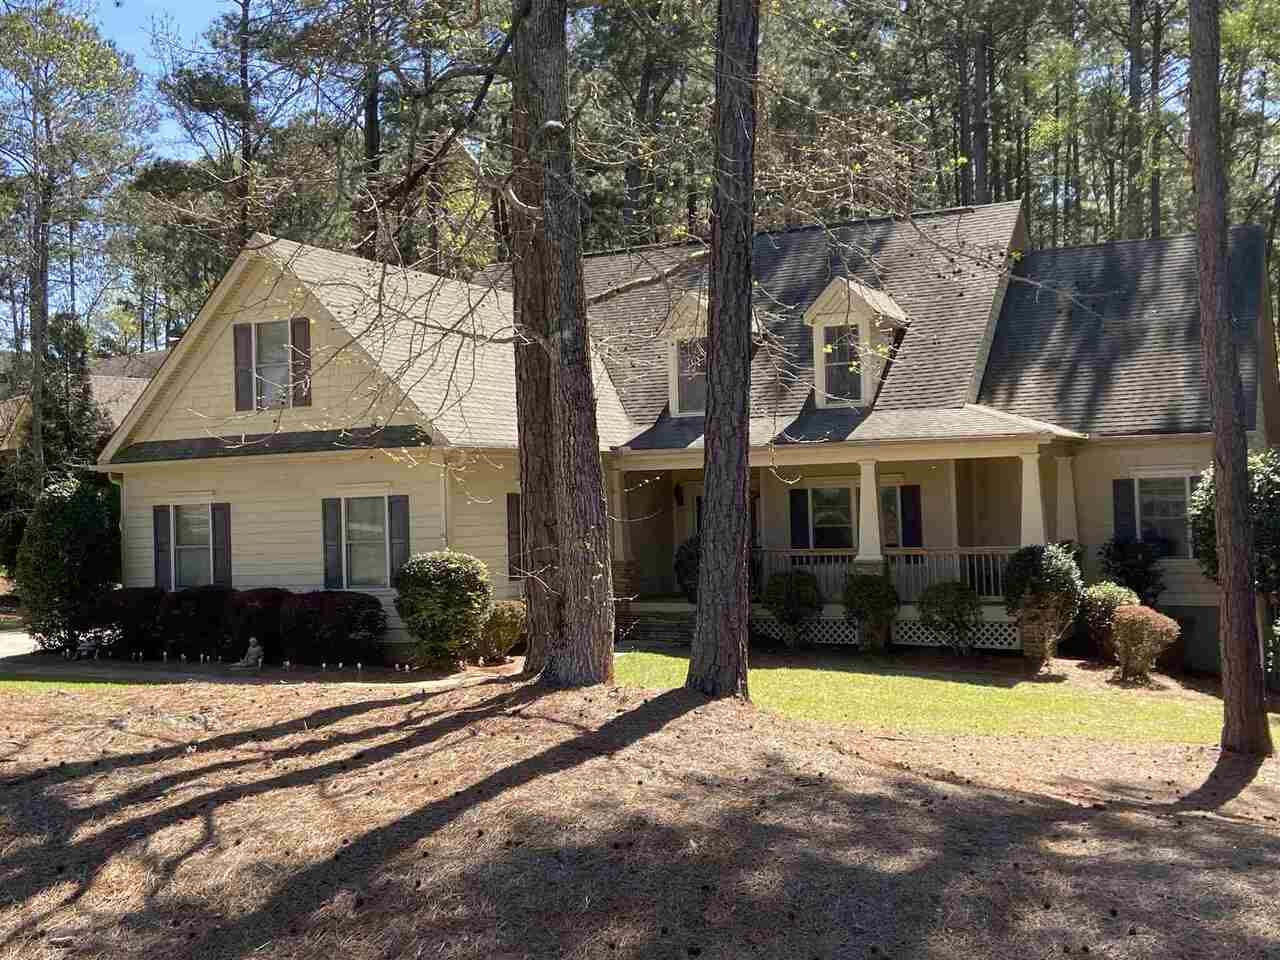 1321 Big Water Cir, Greensboro, GA 30642 - MLS#: 8965925